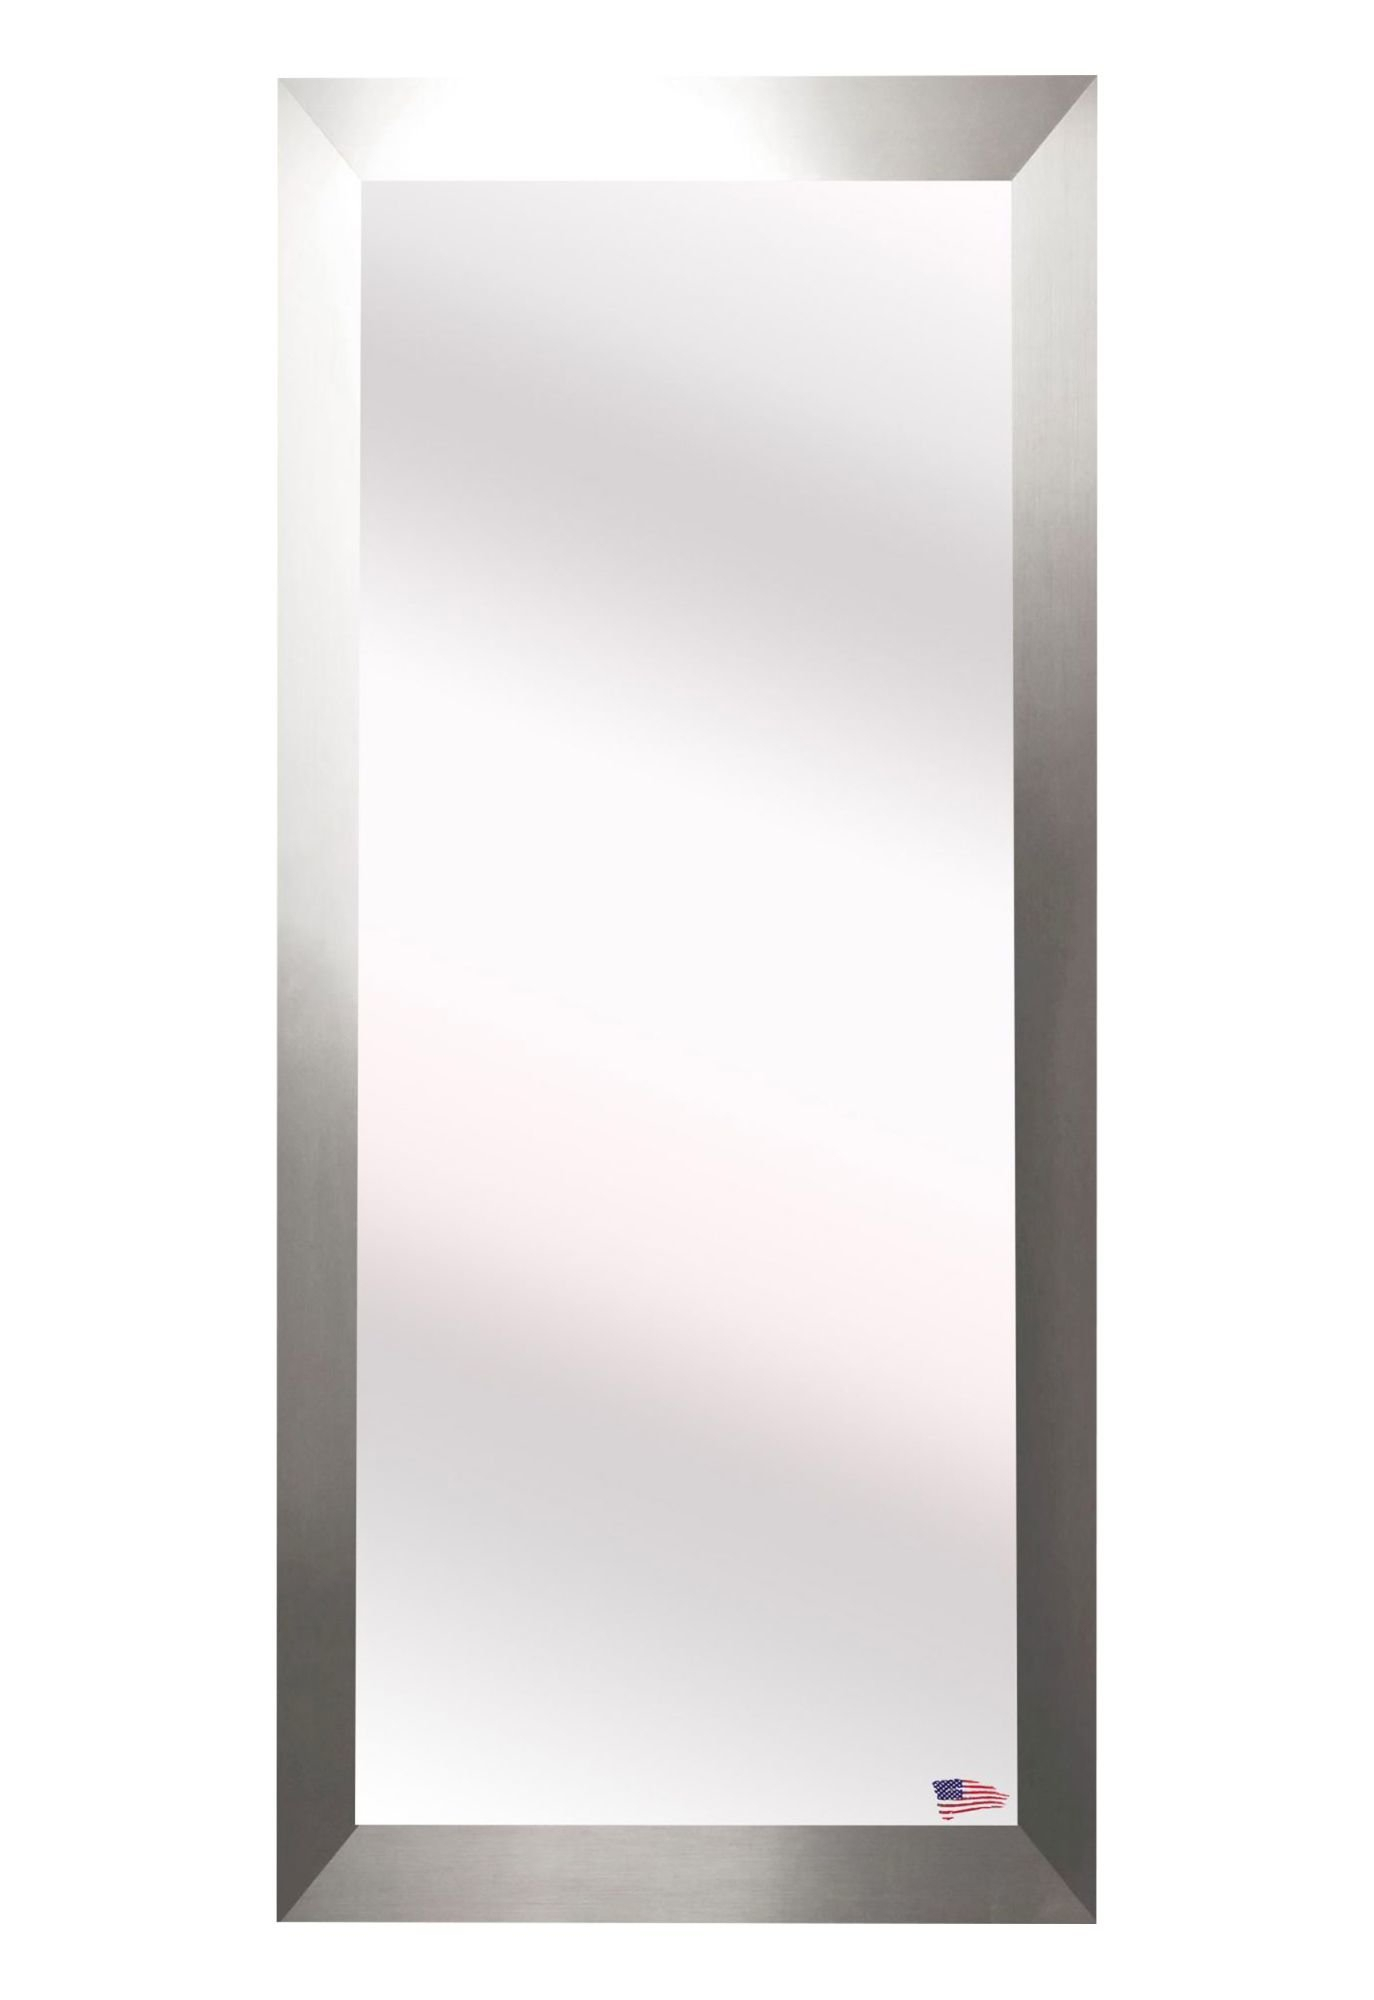 Suddenly Brushed Nickel Wall Mirror Loree Fini #16196 In Hogge Modern Brushed Nickel Large Frame Wall Mirrors (Image 17 of 20)